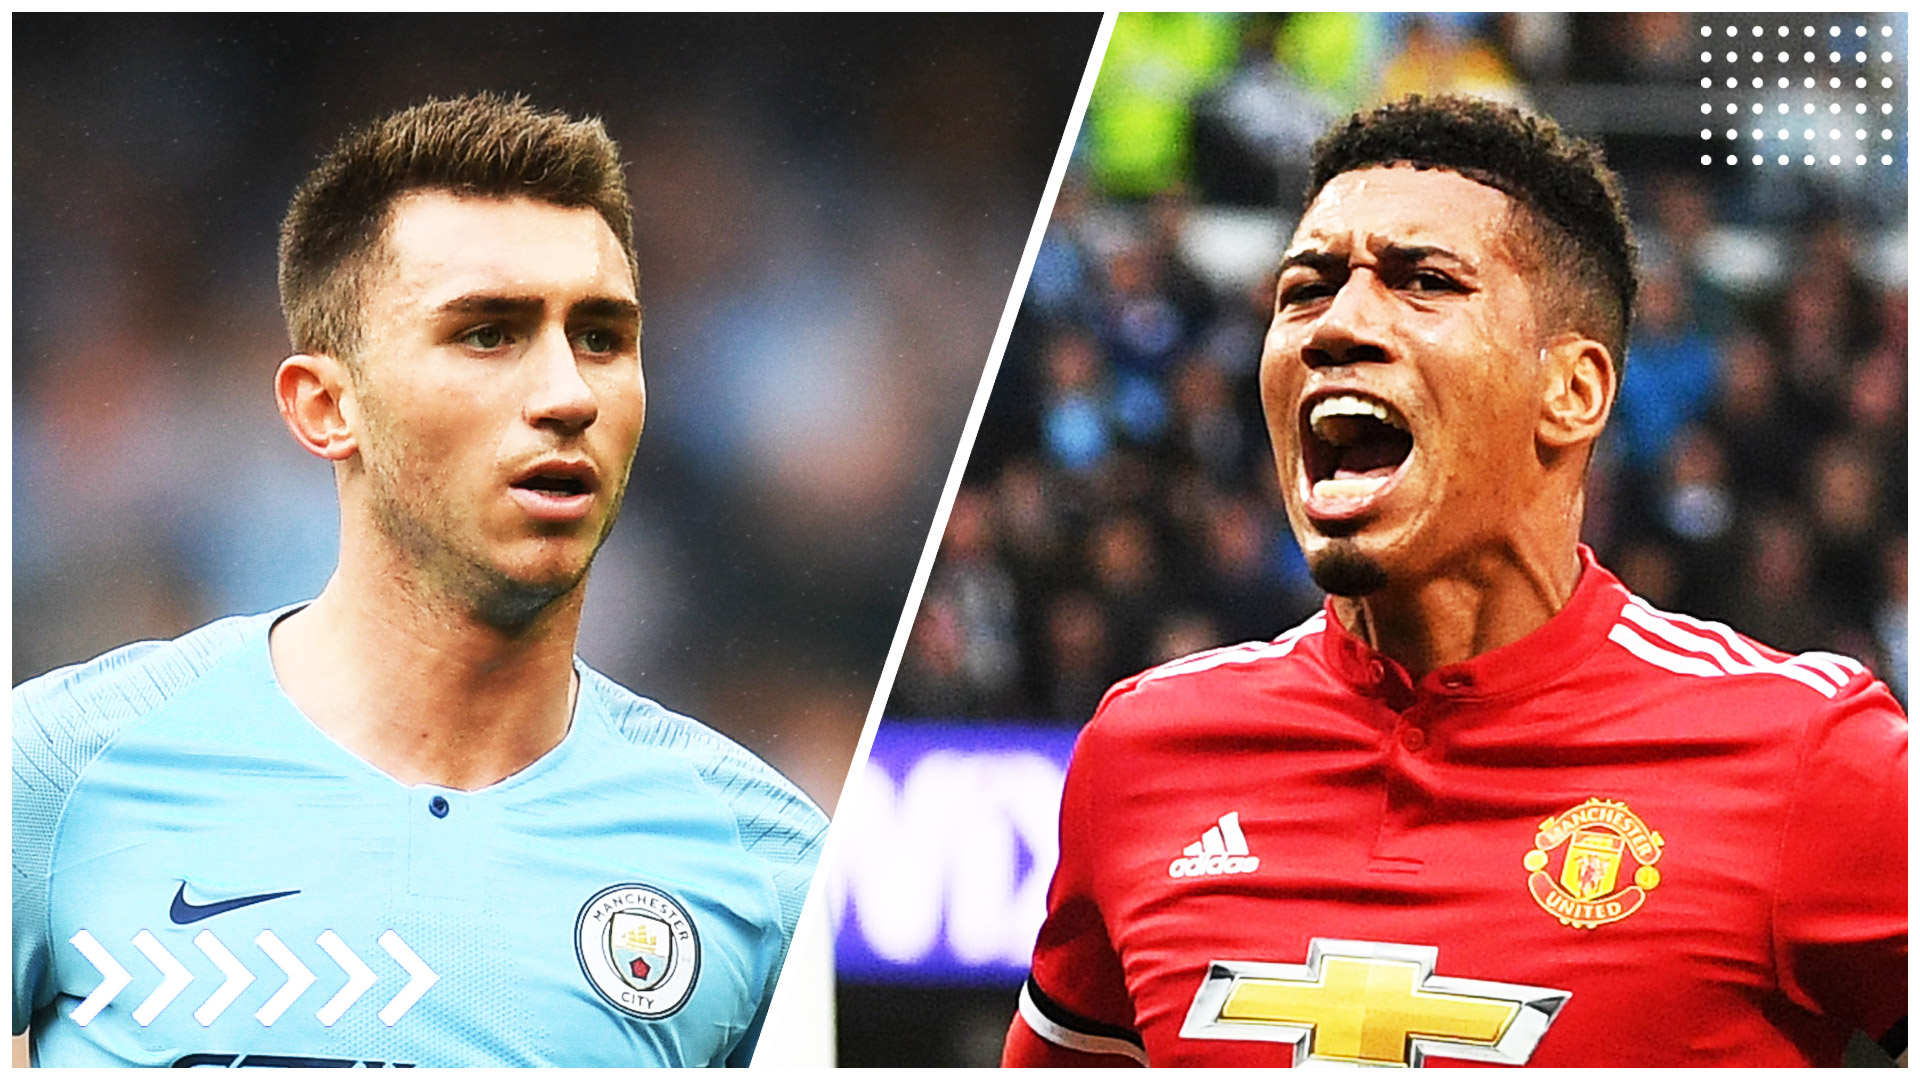 Laporte | Manchester City - Smalling | Manchester United